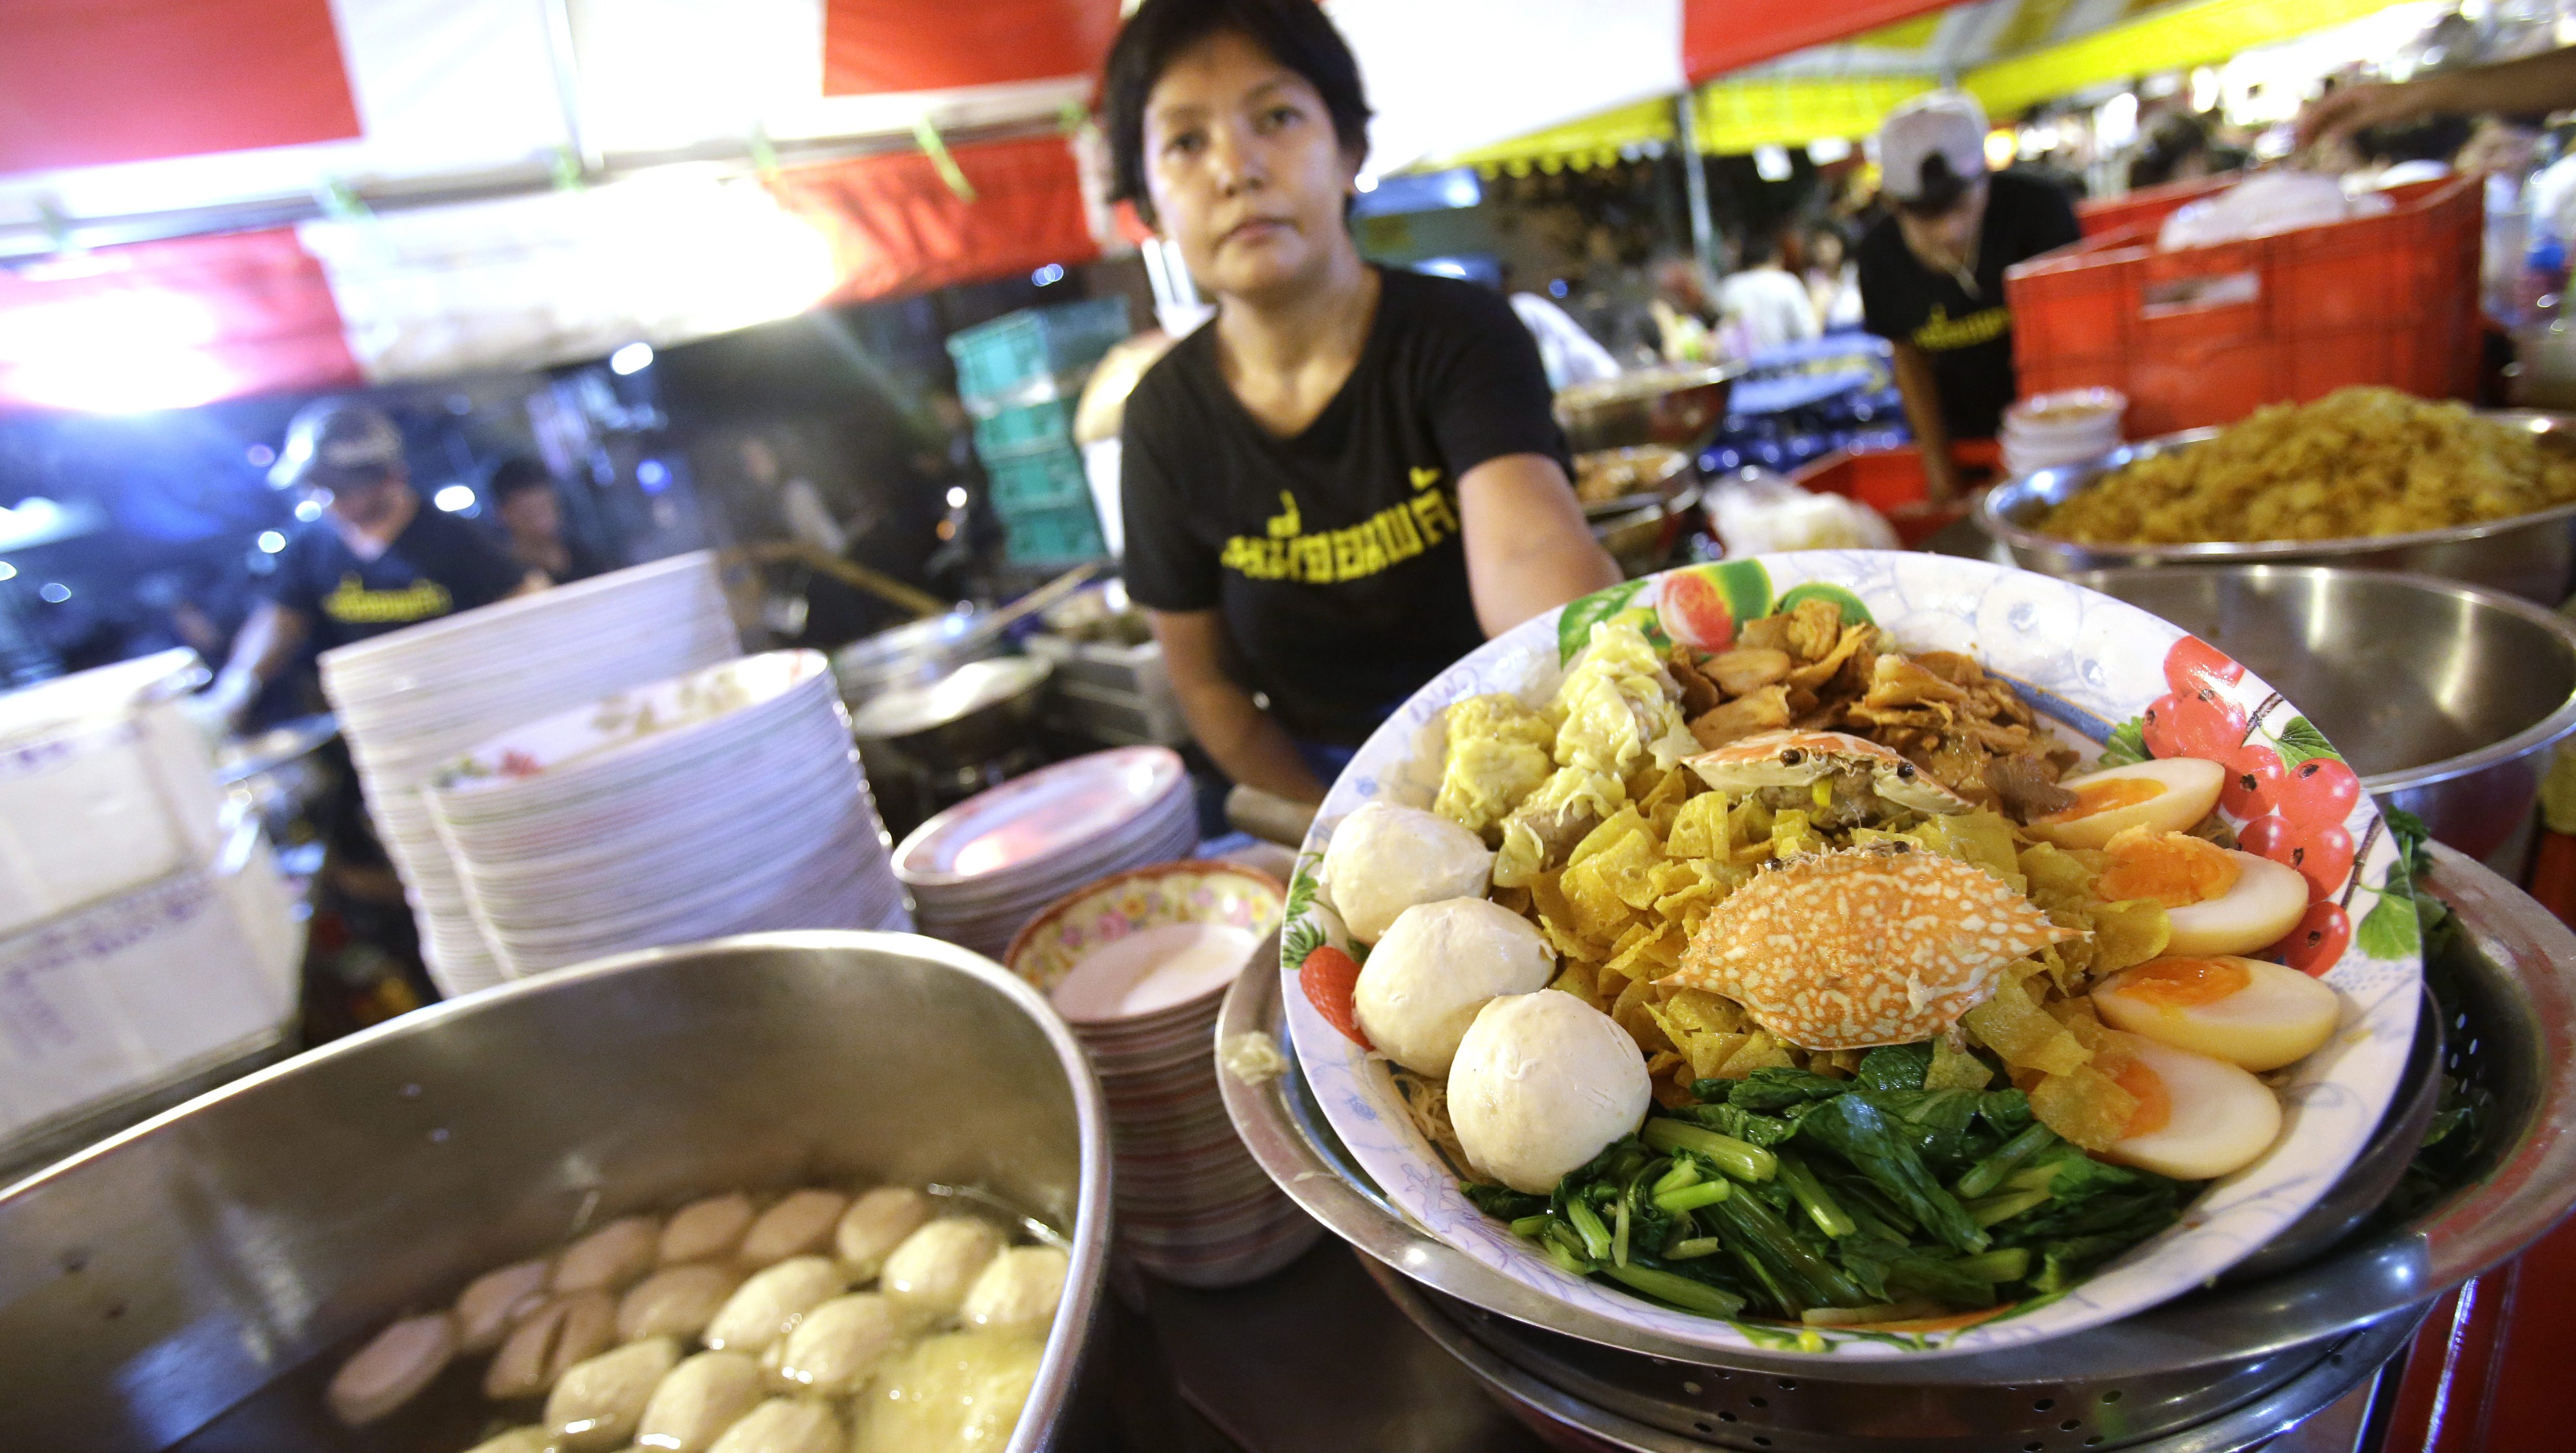 """In this Thursday, Oct. 22, 2015 photo, a street food vendor displays a bowl of Bamee Jom Palang, or """"Power Noodles"""", at one of the most crowded food stalls at Rotfai Market in Bangkok, Thailand. The vendor, whose specialty dish is the 12-inch long noodles, challenges buyers to finish eating the dish within five minutes. Those who can don't have to pay the 350 baht ($10) price.  In cities like Bangkok, street food remains the heart and soul of local cuisine, sold day and night from carts and makeshift stands. The classic Bangkok night market has evolved from catering mostly to club-goers looking for a late-night eat to offering real shopping opportunities for the city's large, young and relatively affluent middle class. (AP Photo/Sakchai Lalit)"""